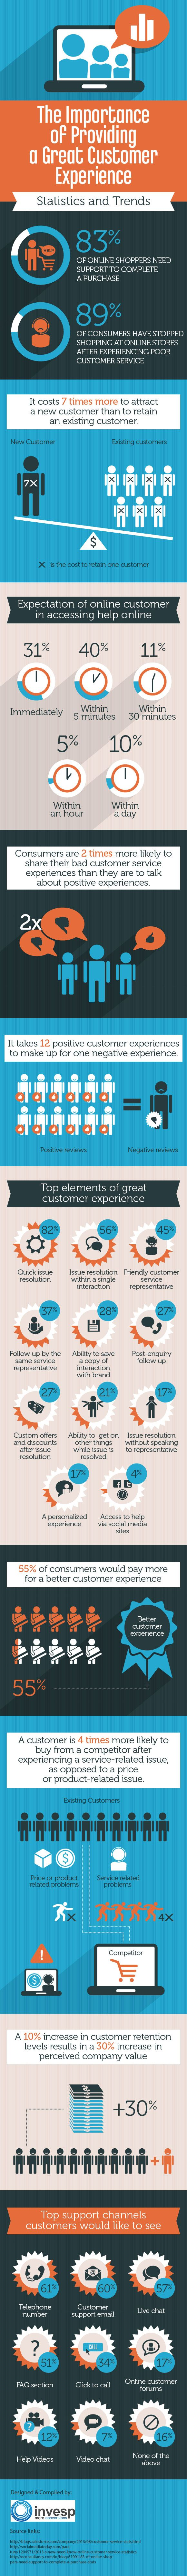 How Important Is Customer Service In Customer Experience? (Infographic)